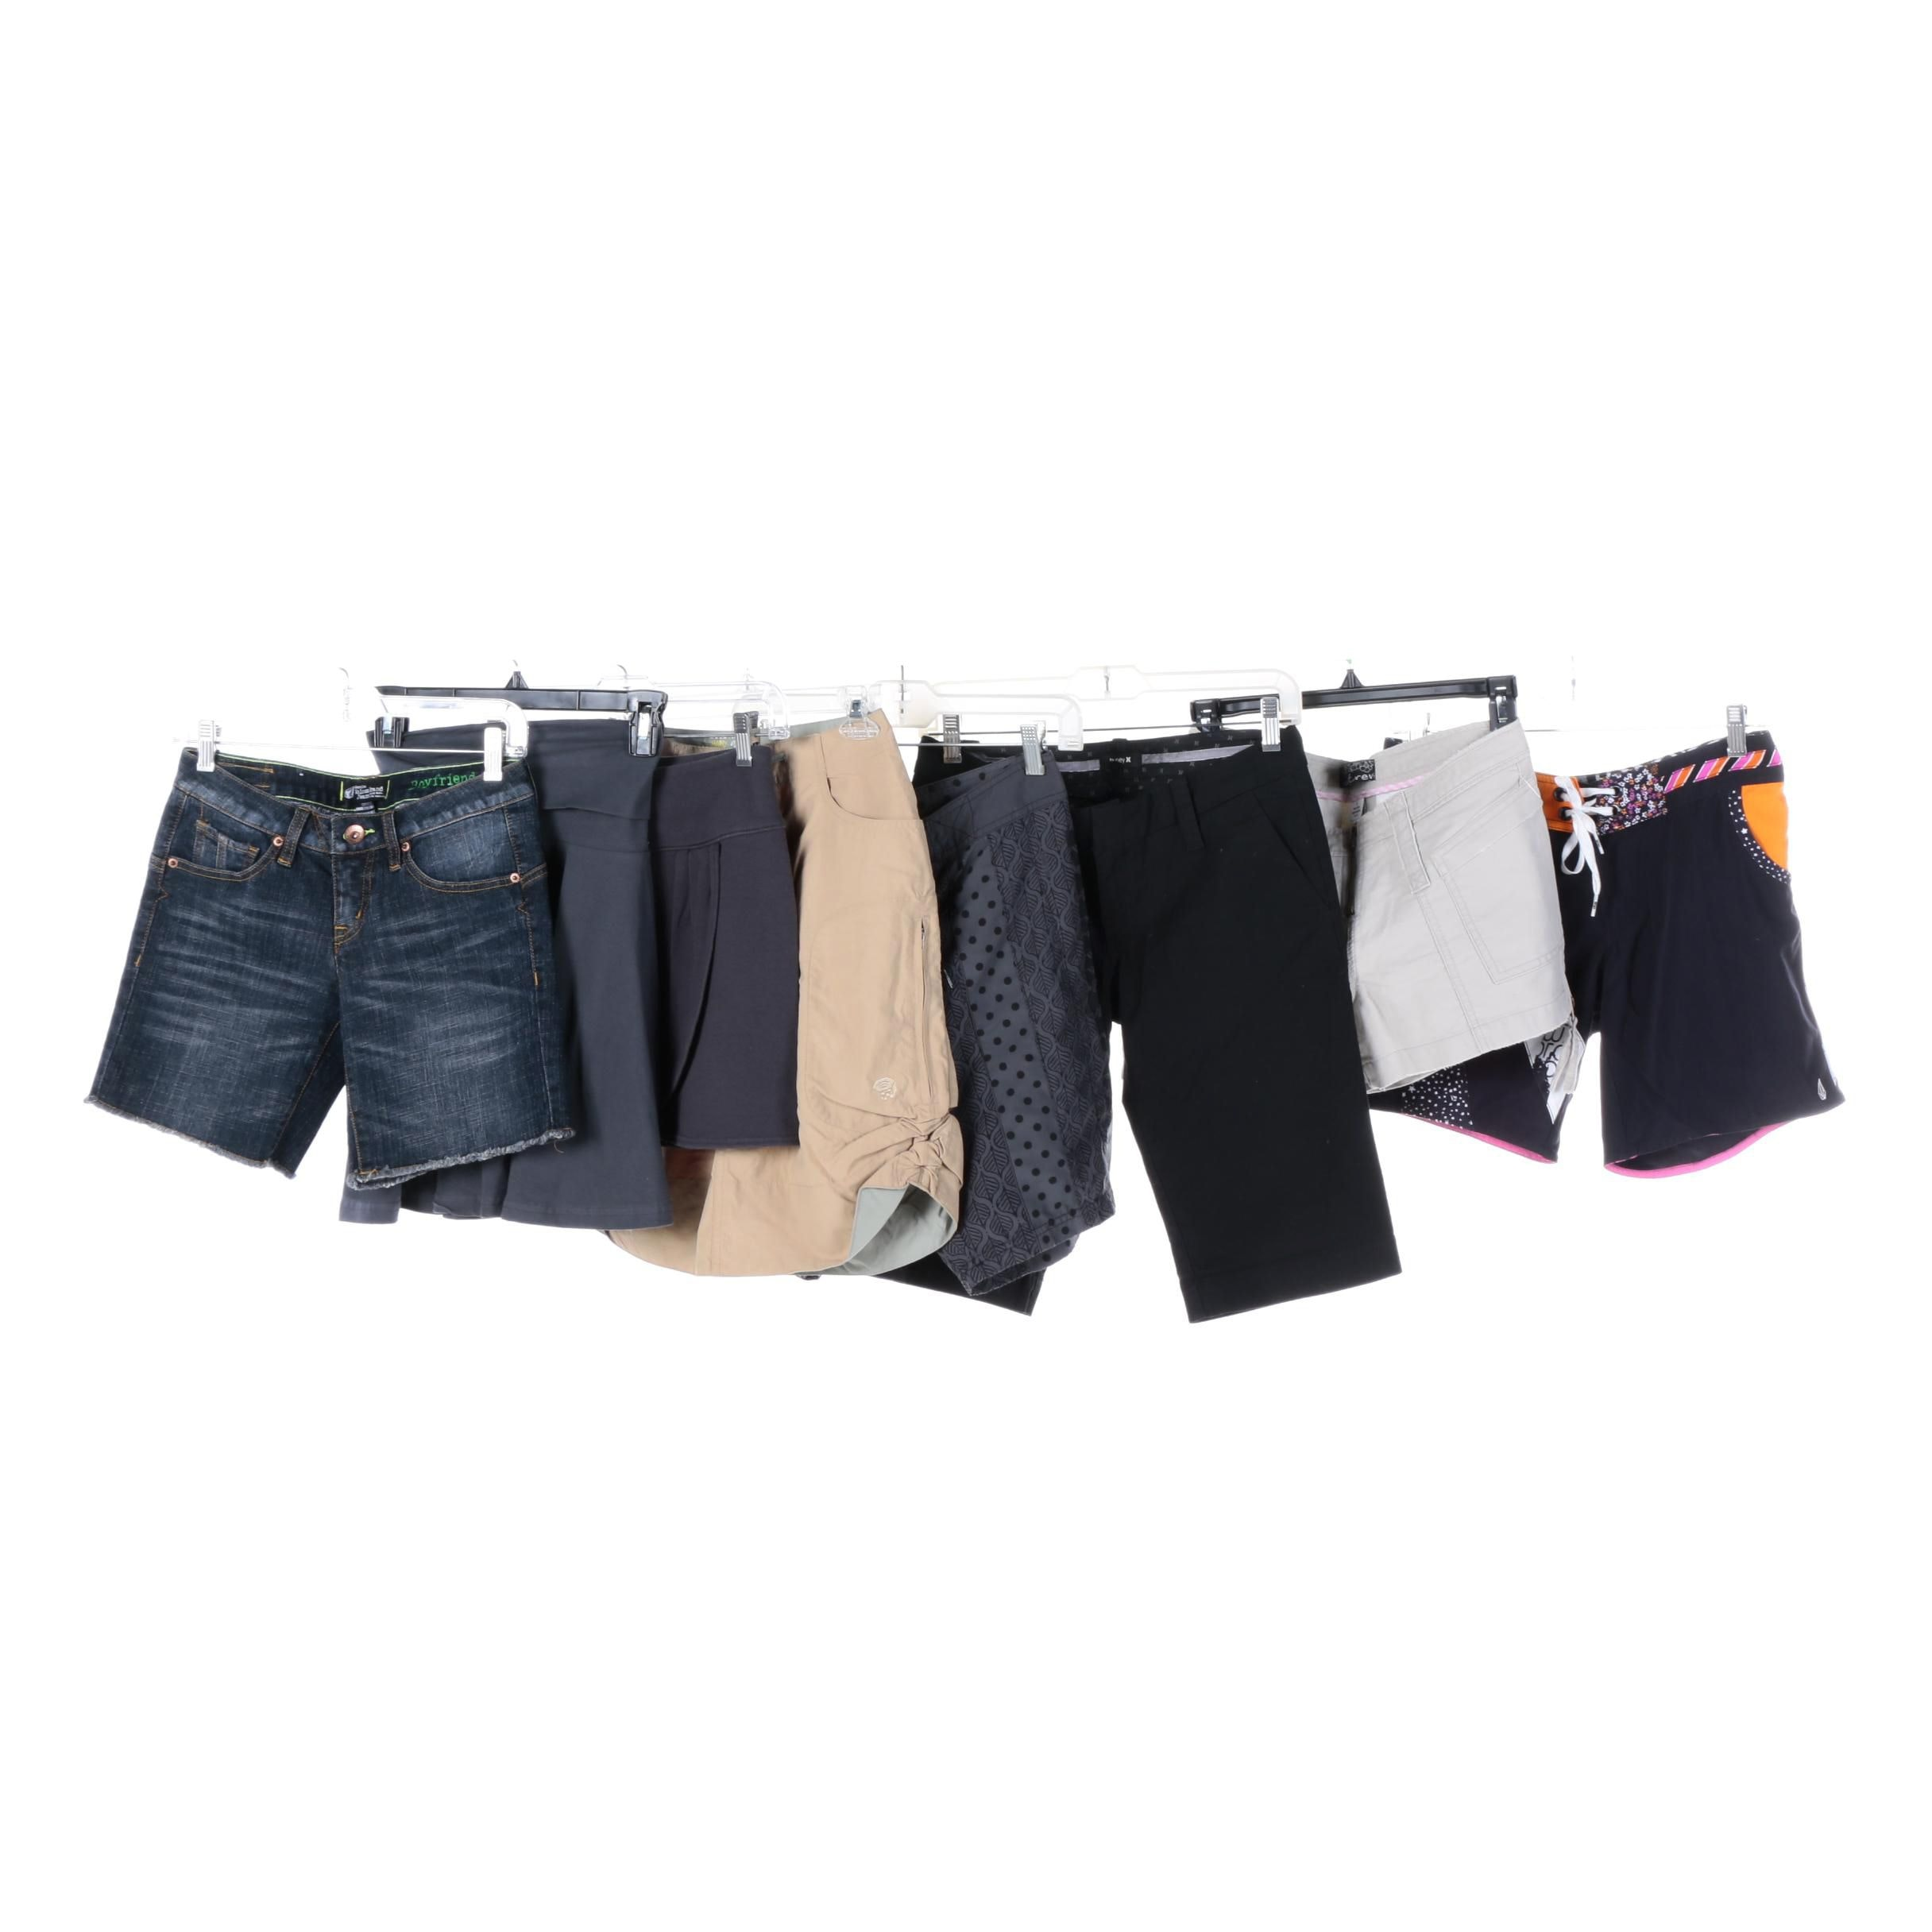 Women's Shorts and Skirts Including Hurley and Volcom